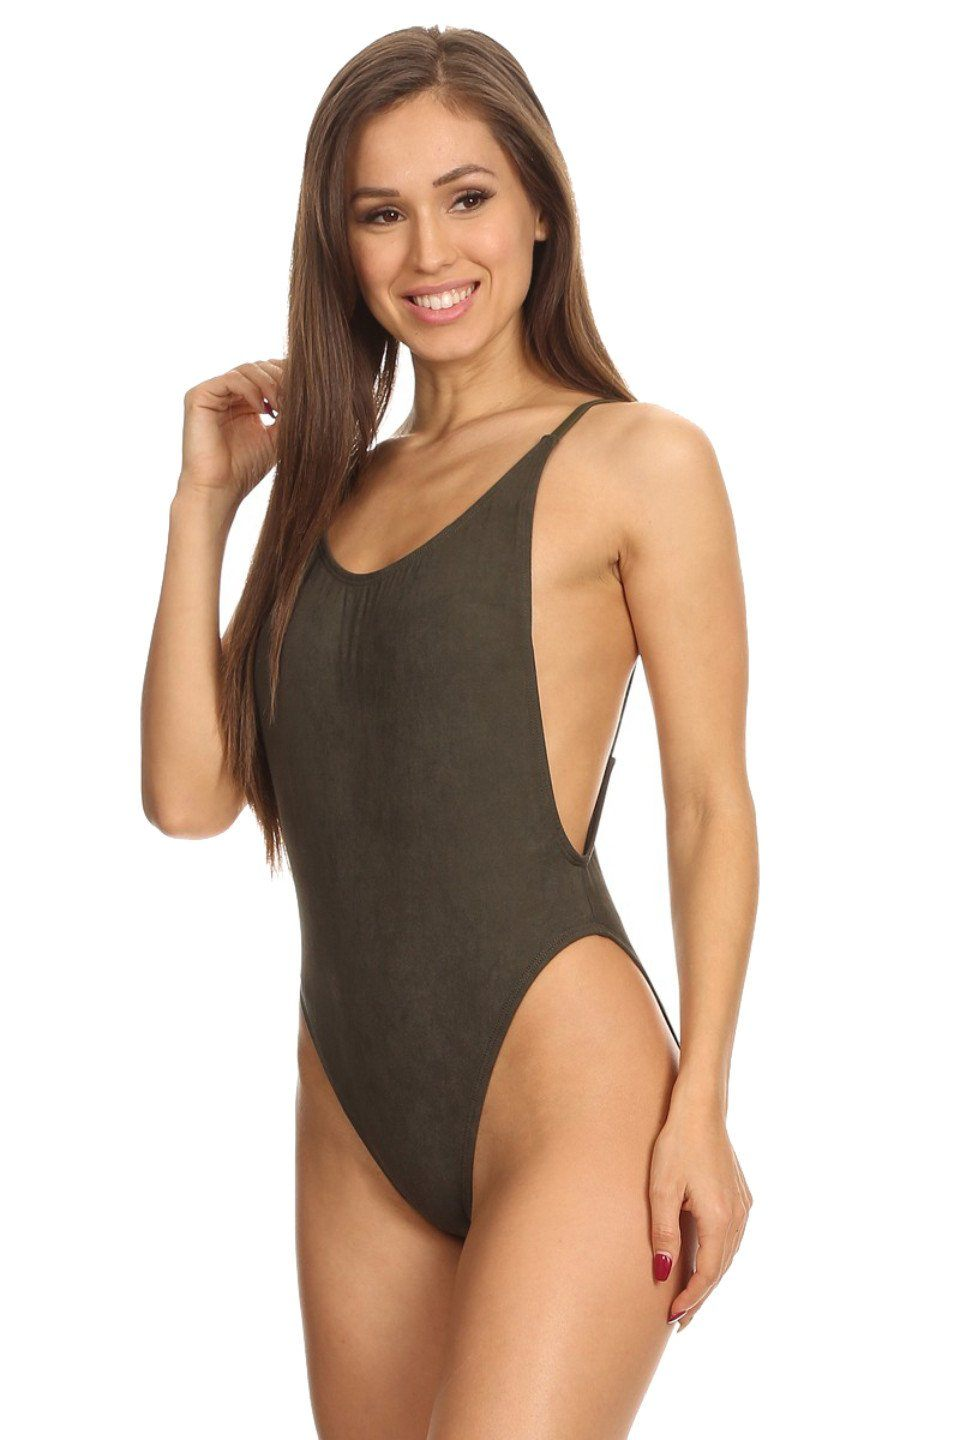 Olive Suede High Cut Vintage Swimsuit Side - Dippin' Daisy's Swimwear